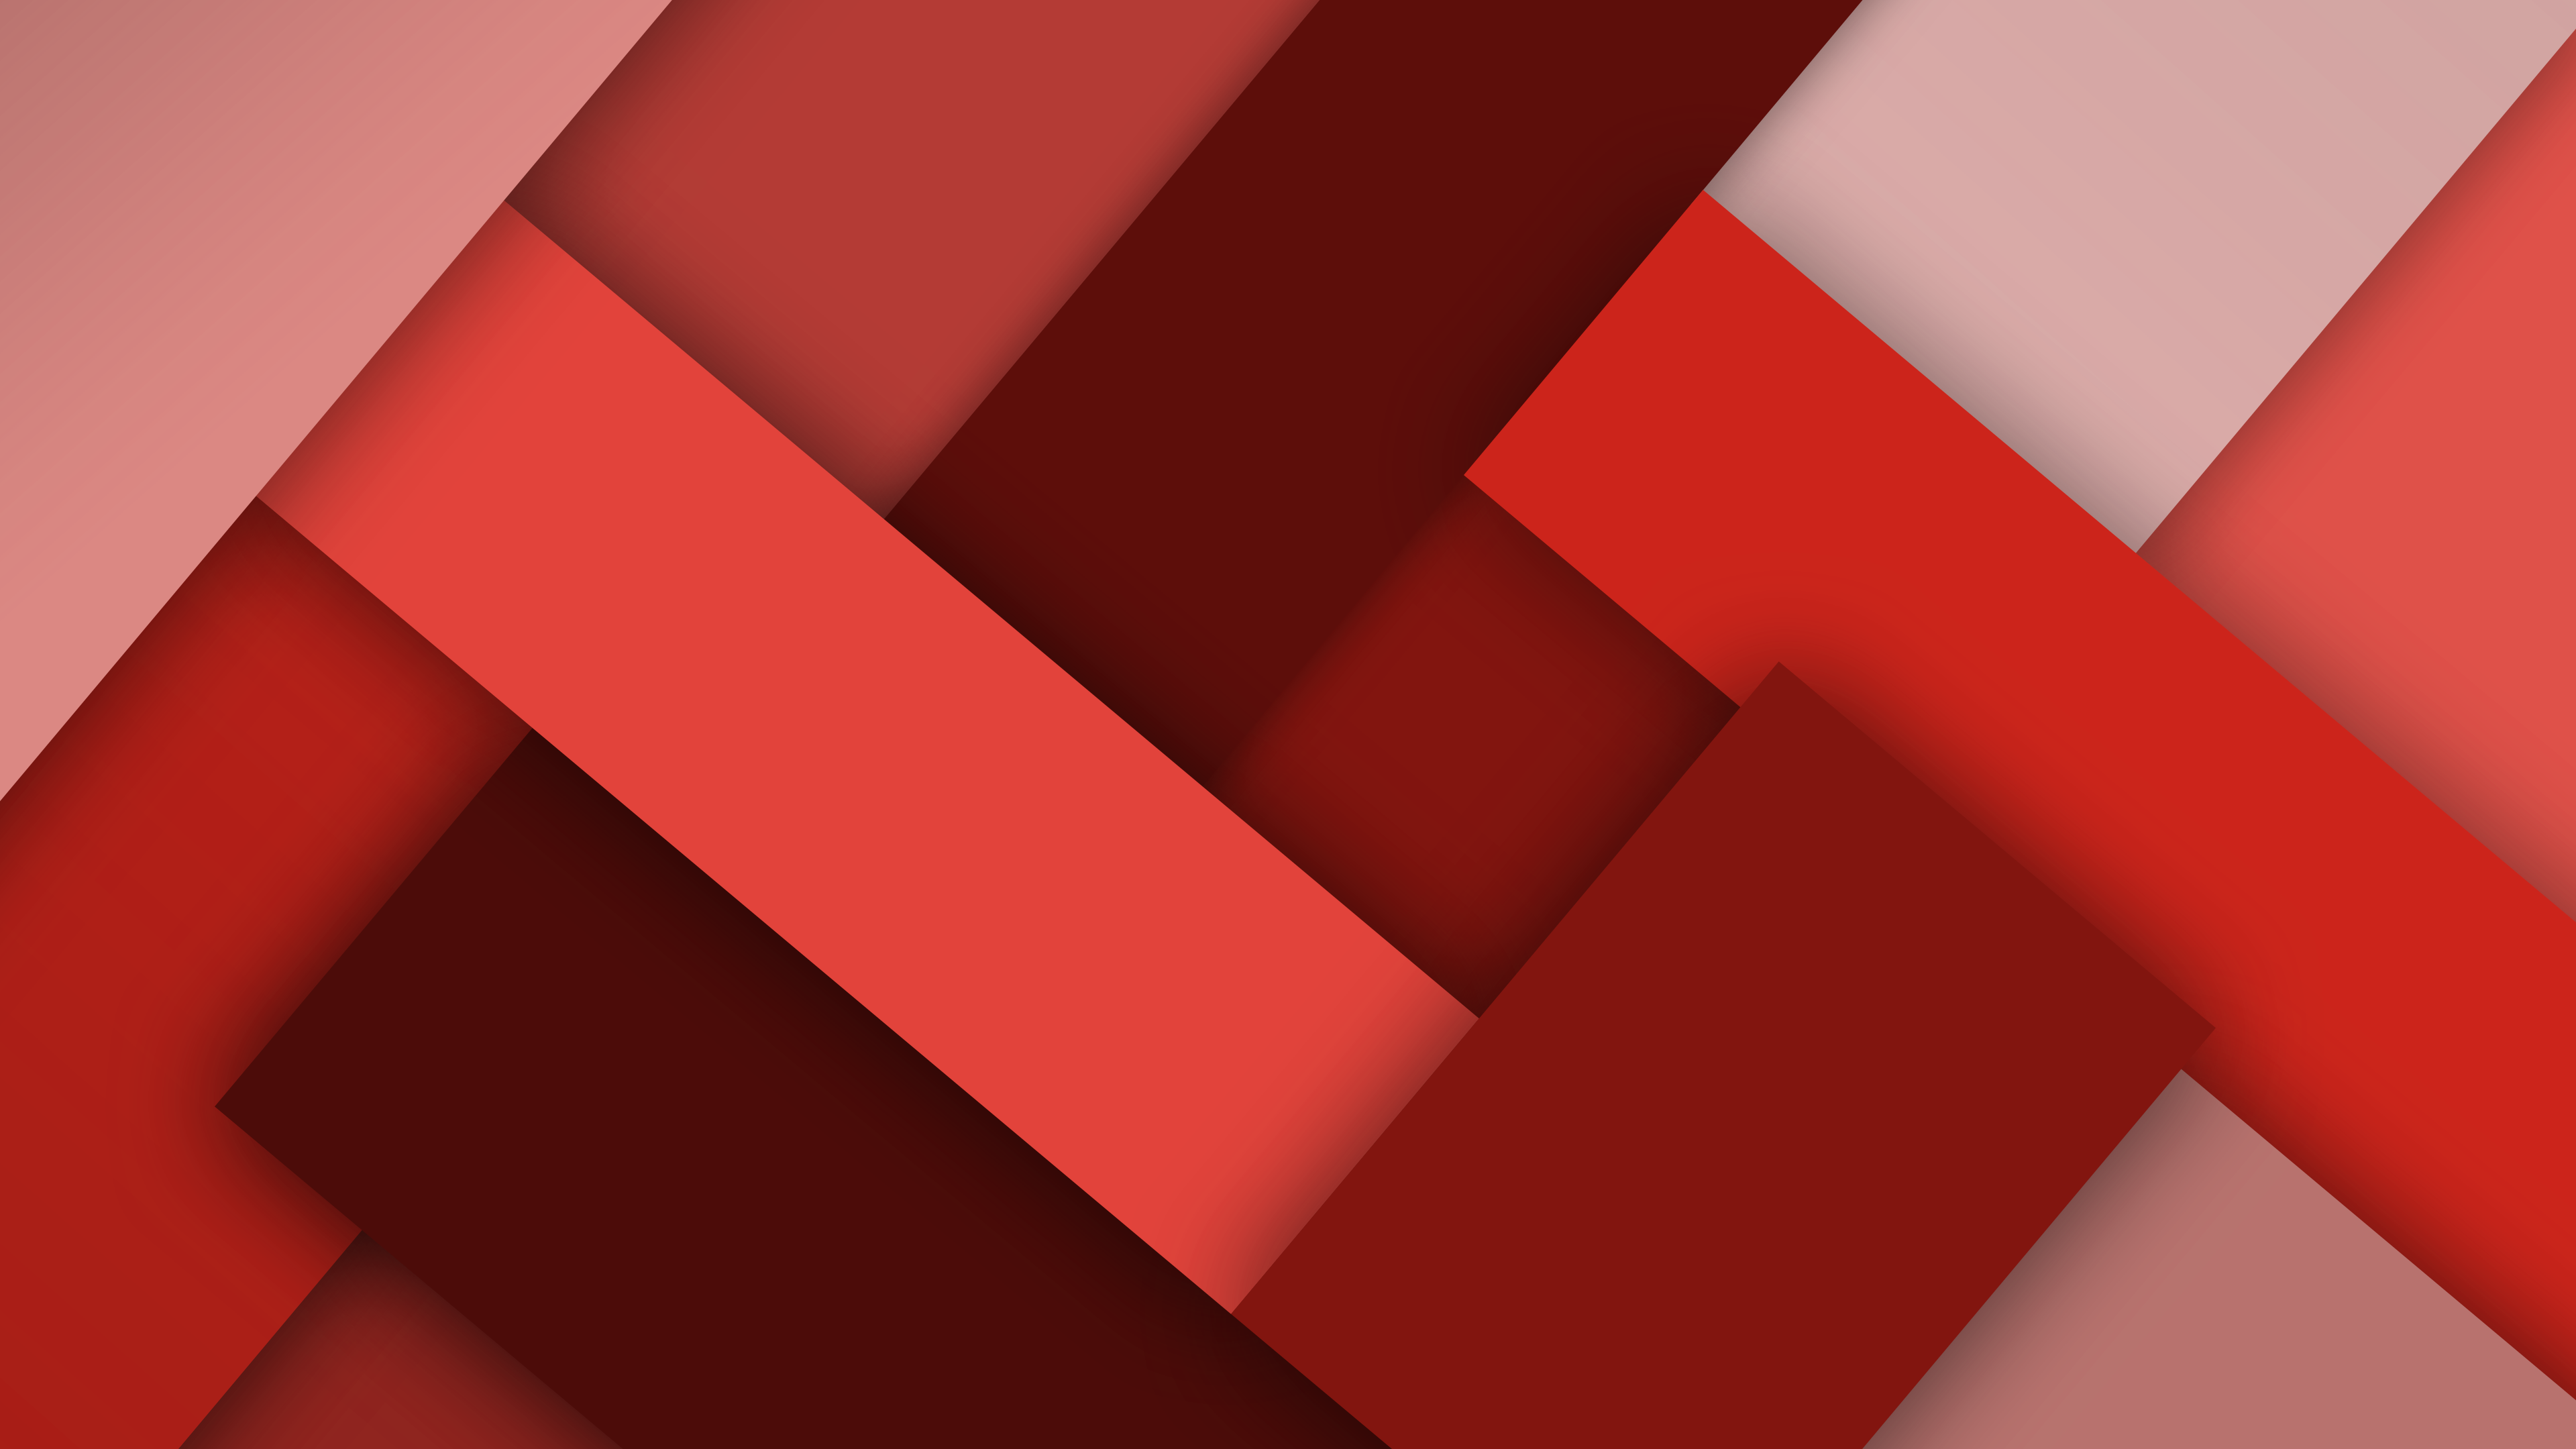 Blocks Red 4k Ultra Hd Wallpaper And Background 3840x2160 Id 559118